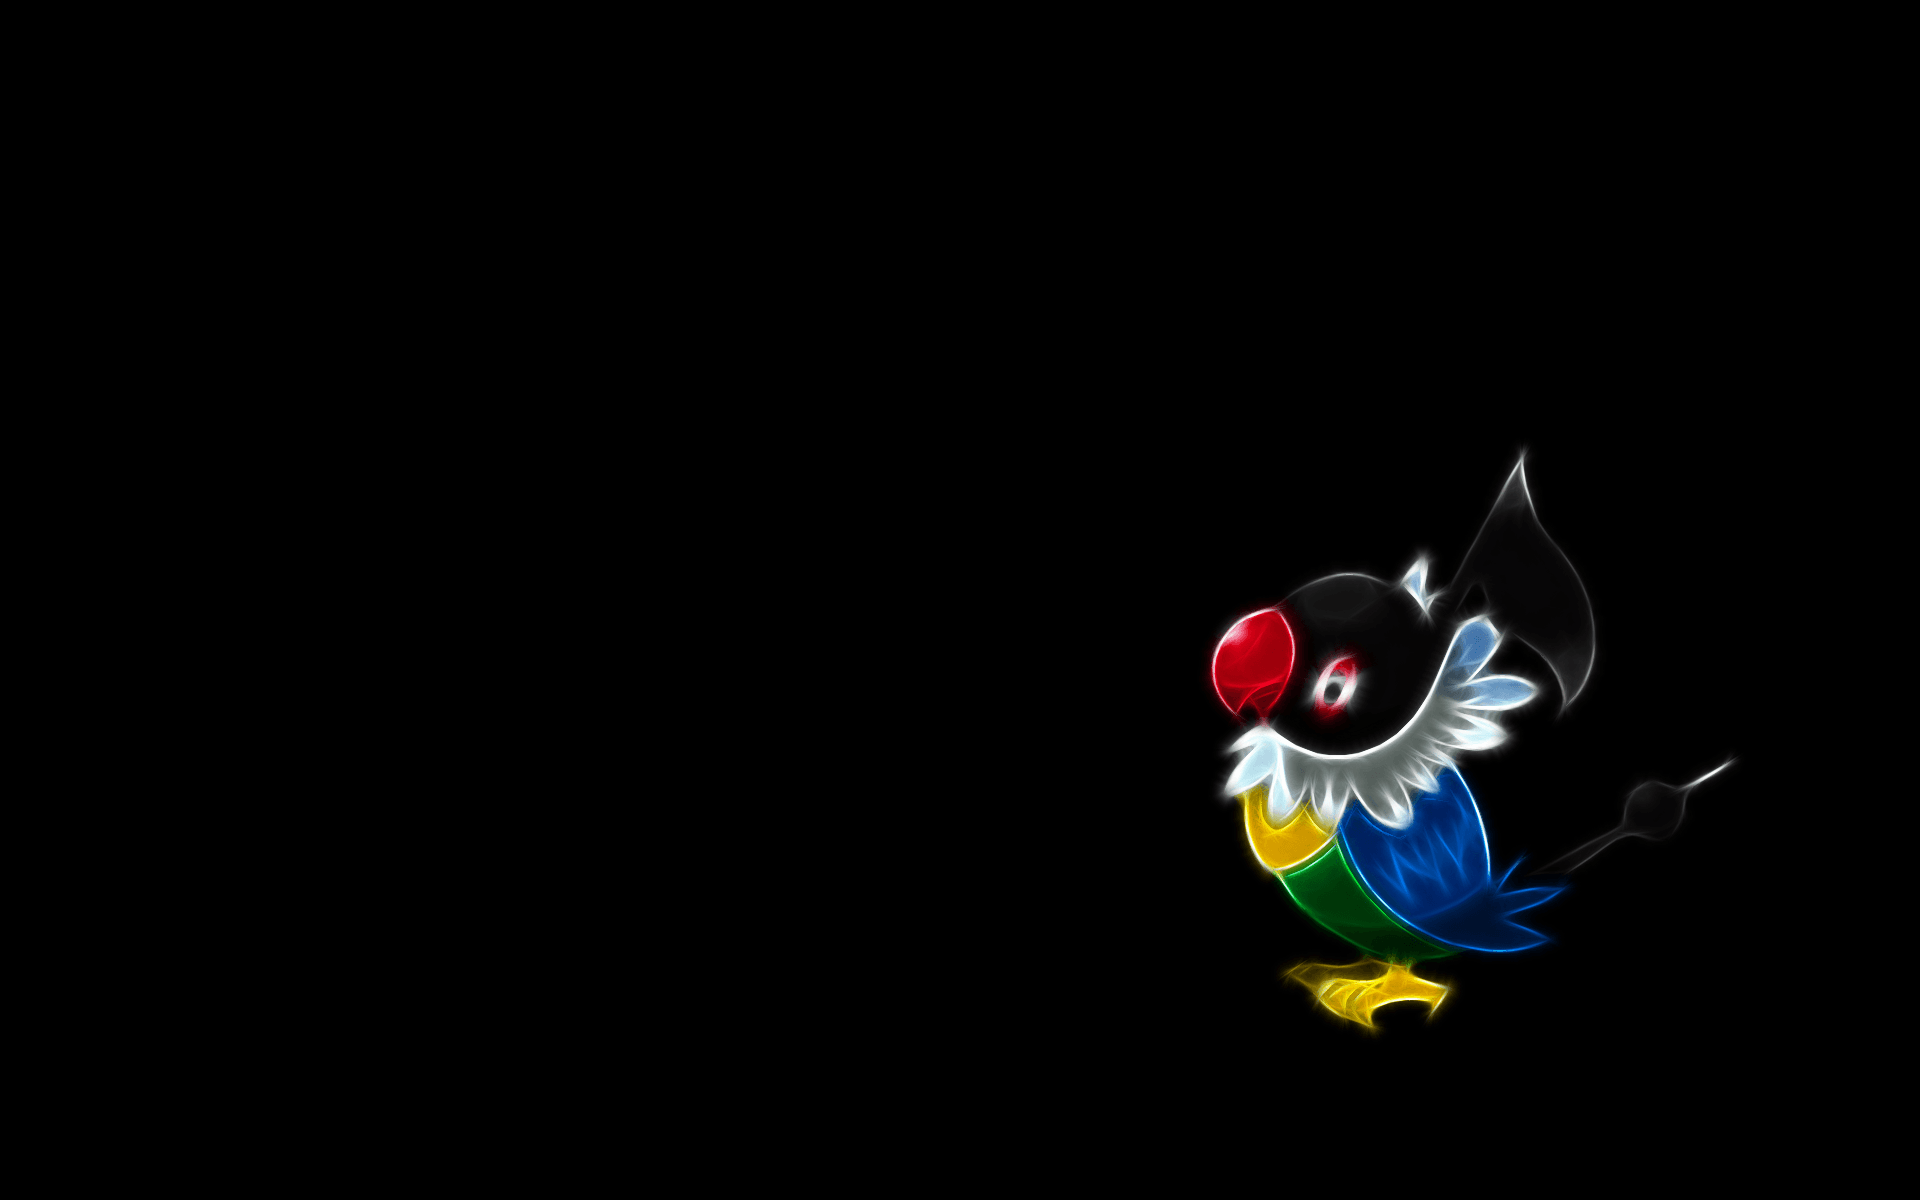 The Images of Pokemon Black Background Chatot 1920x1200 HD ...